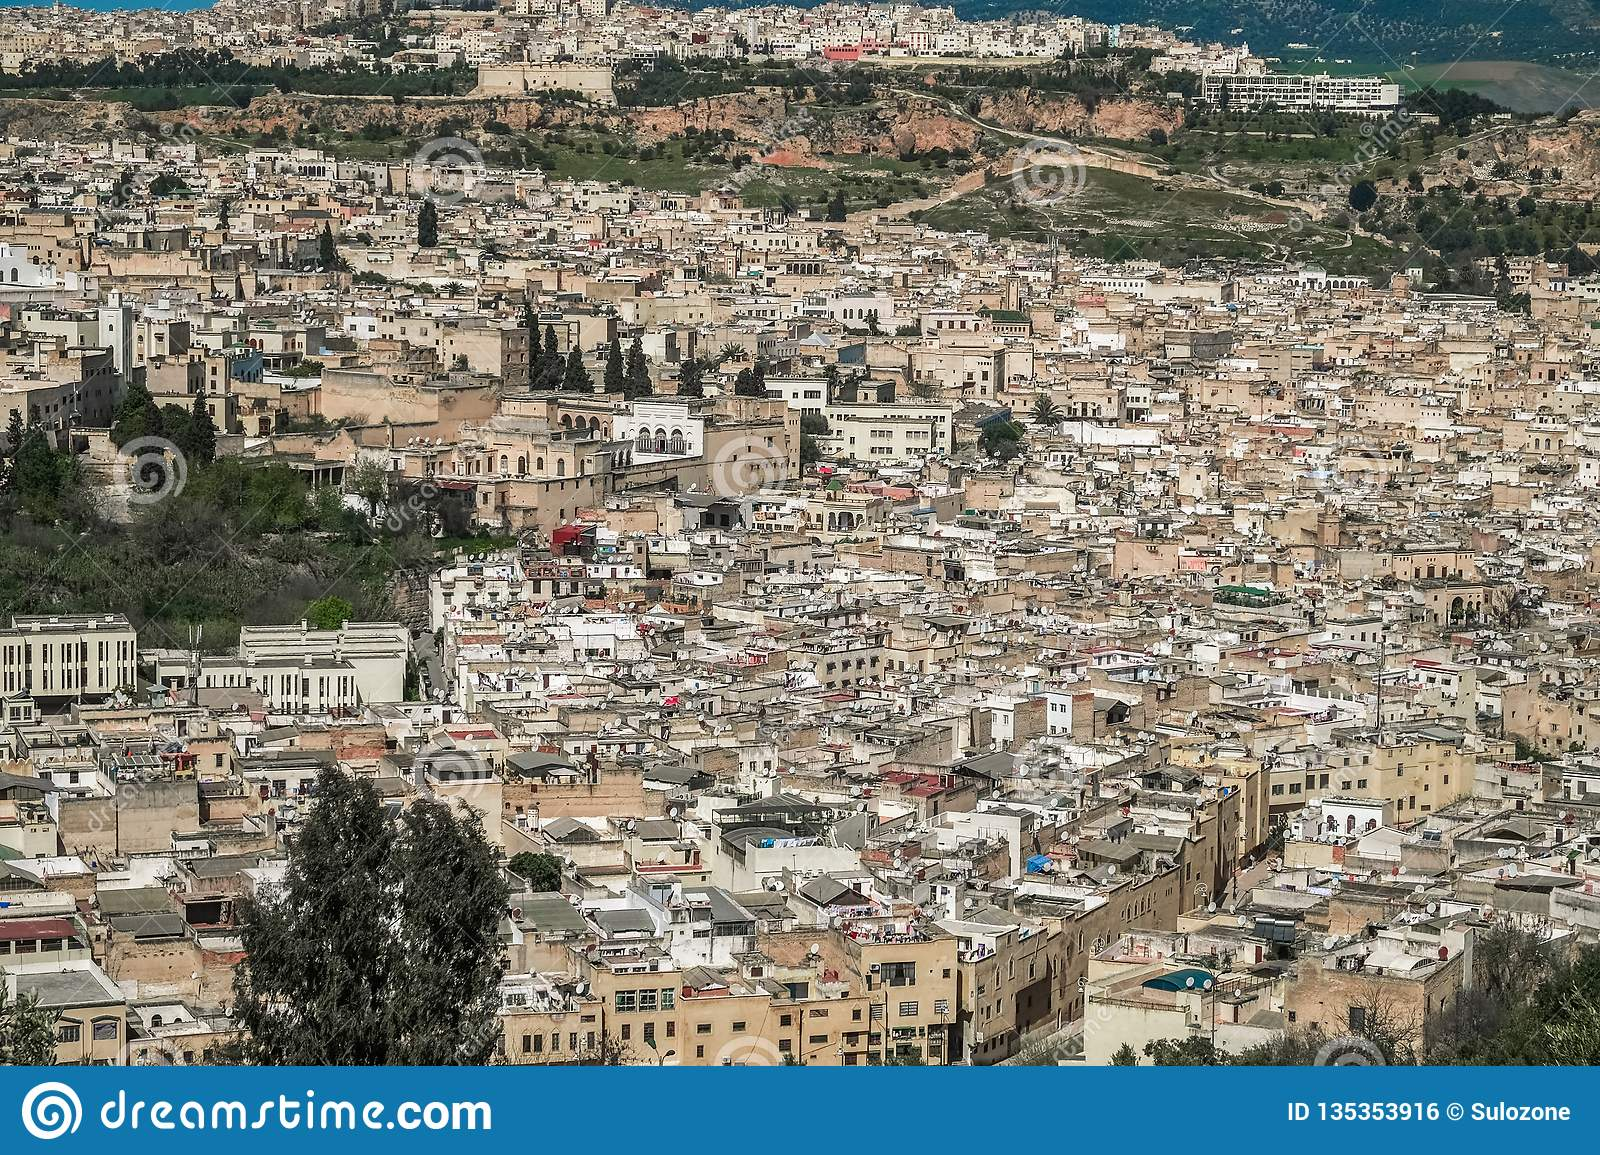 Aerial View Of Fes El Bali, Morocco  Stock Photo - Image of